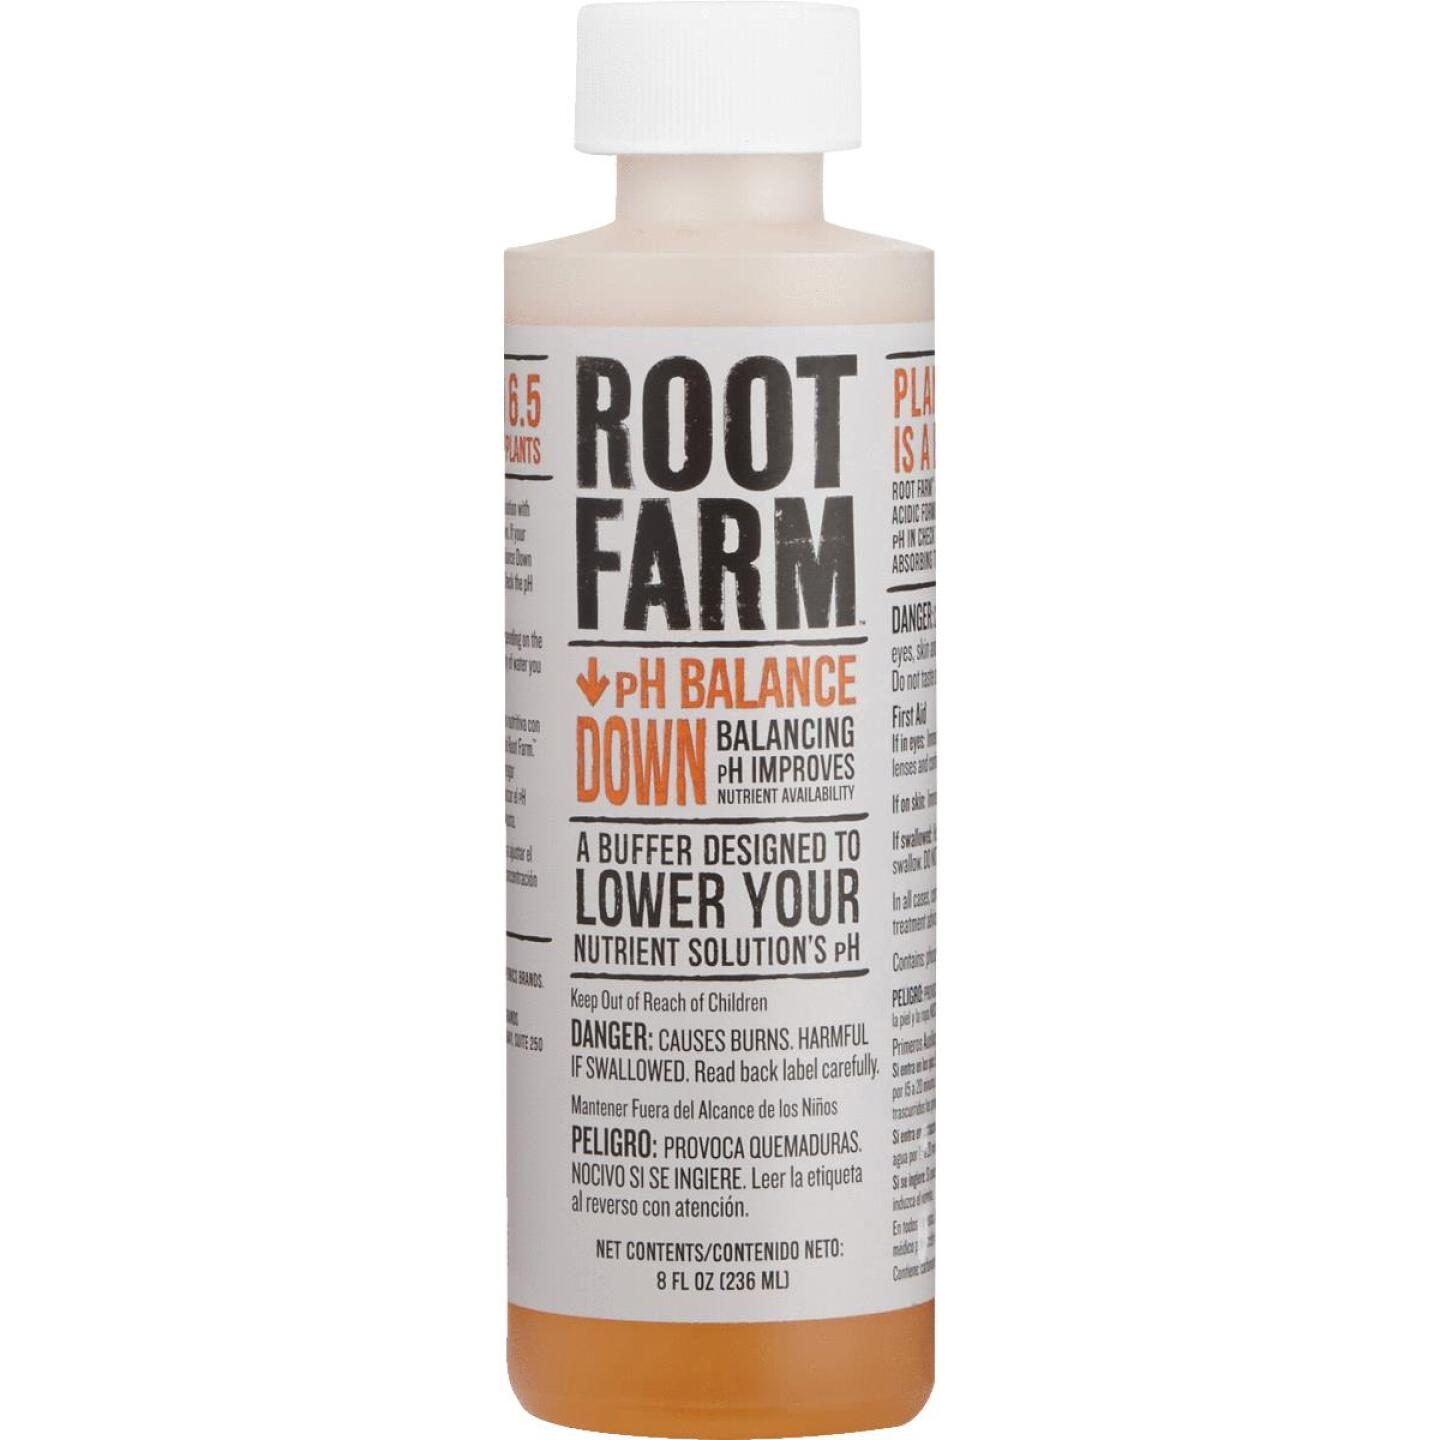 Root Farm 8 Oz. Concentrated Liquid pH Balance Down For Nutrient Solution Image 2